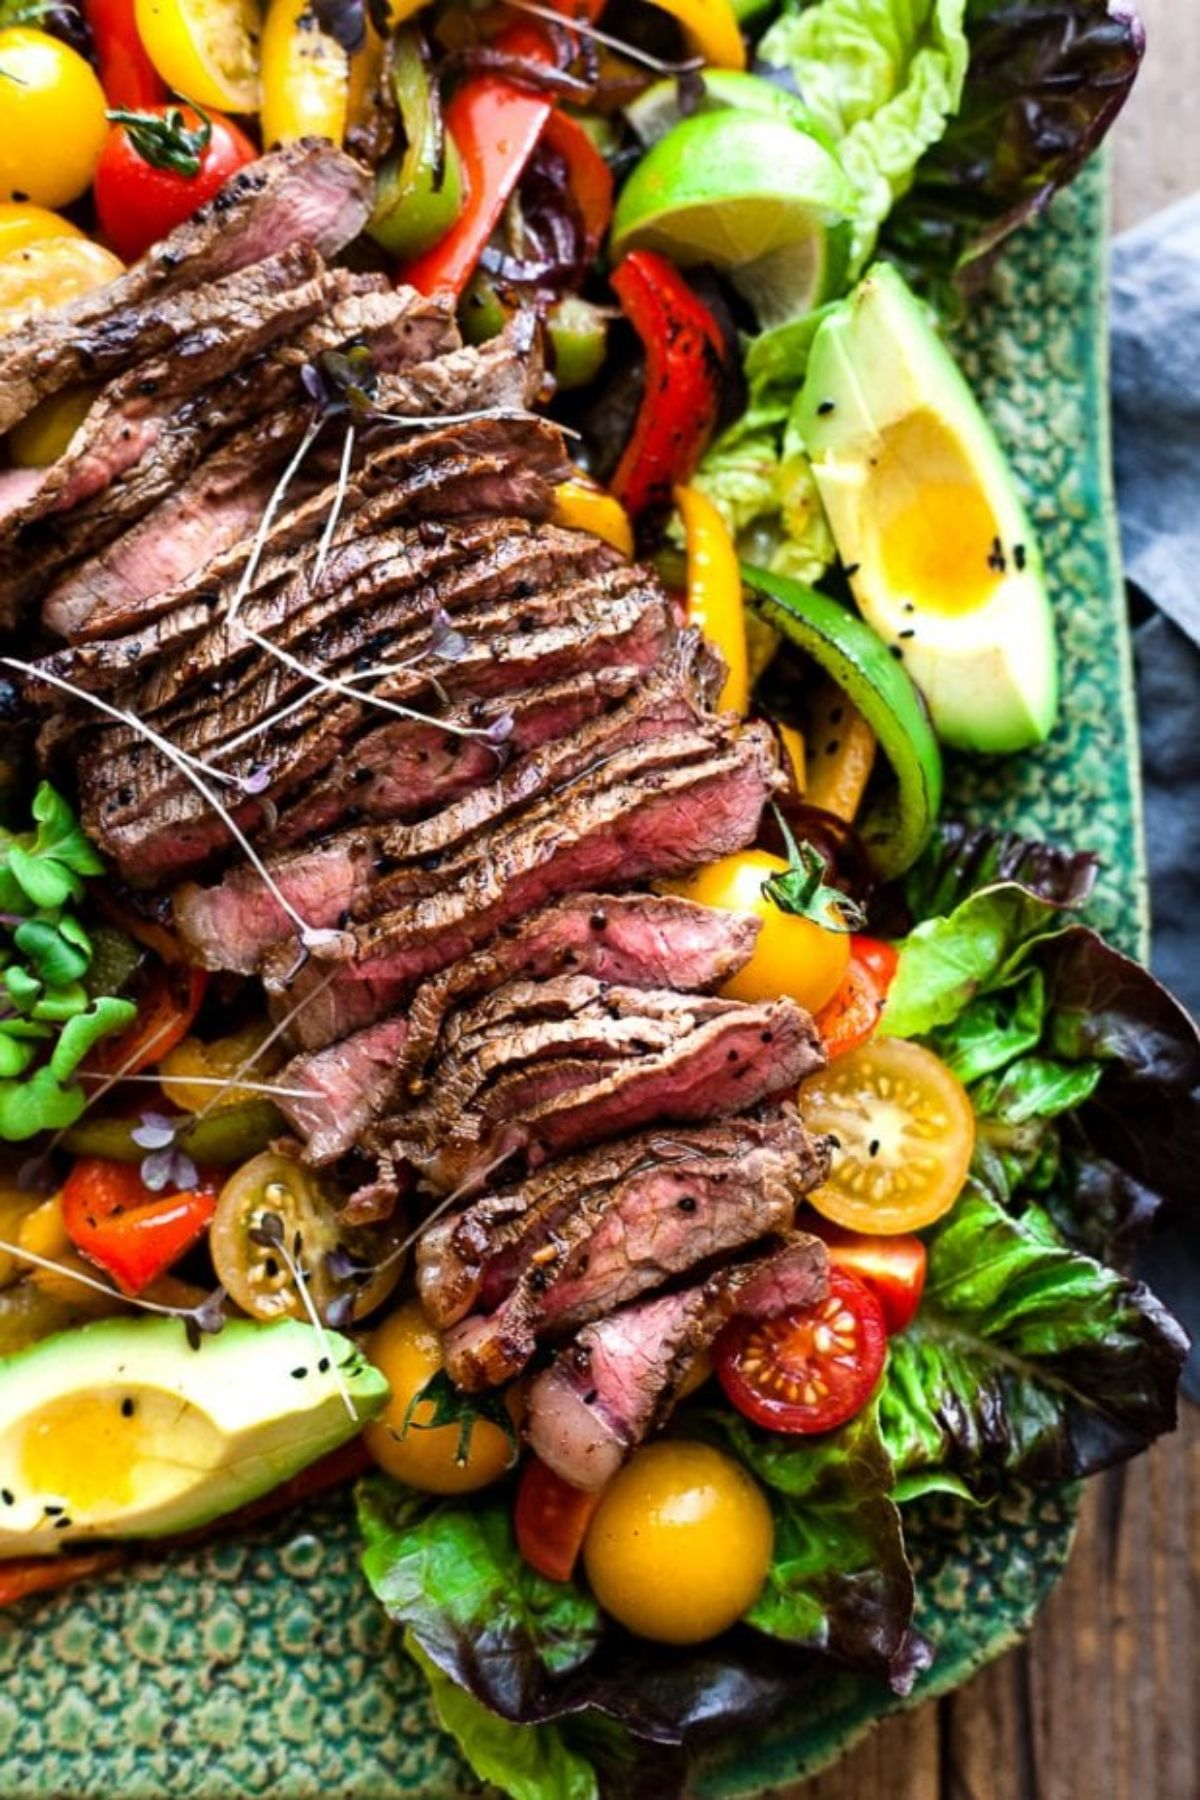 A partial shot of a green serving platter. On it are lettuce leaves, avocado, sliced peppers, halved yellow and red tomatoes, and sliced steak